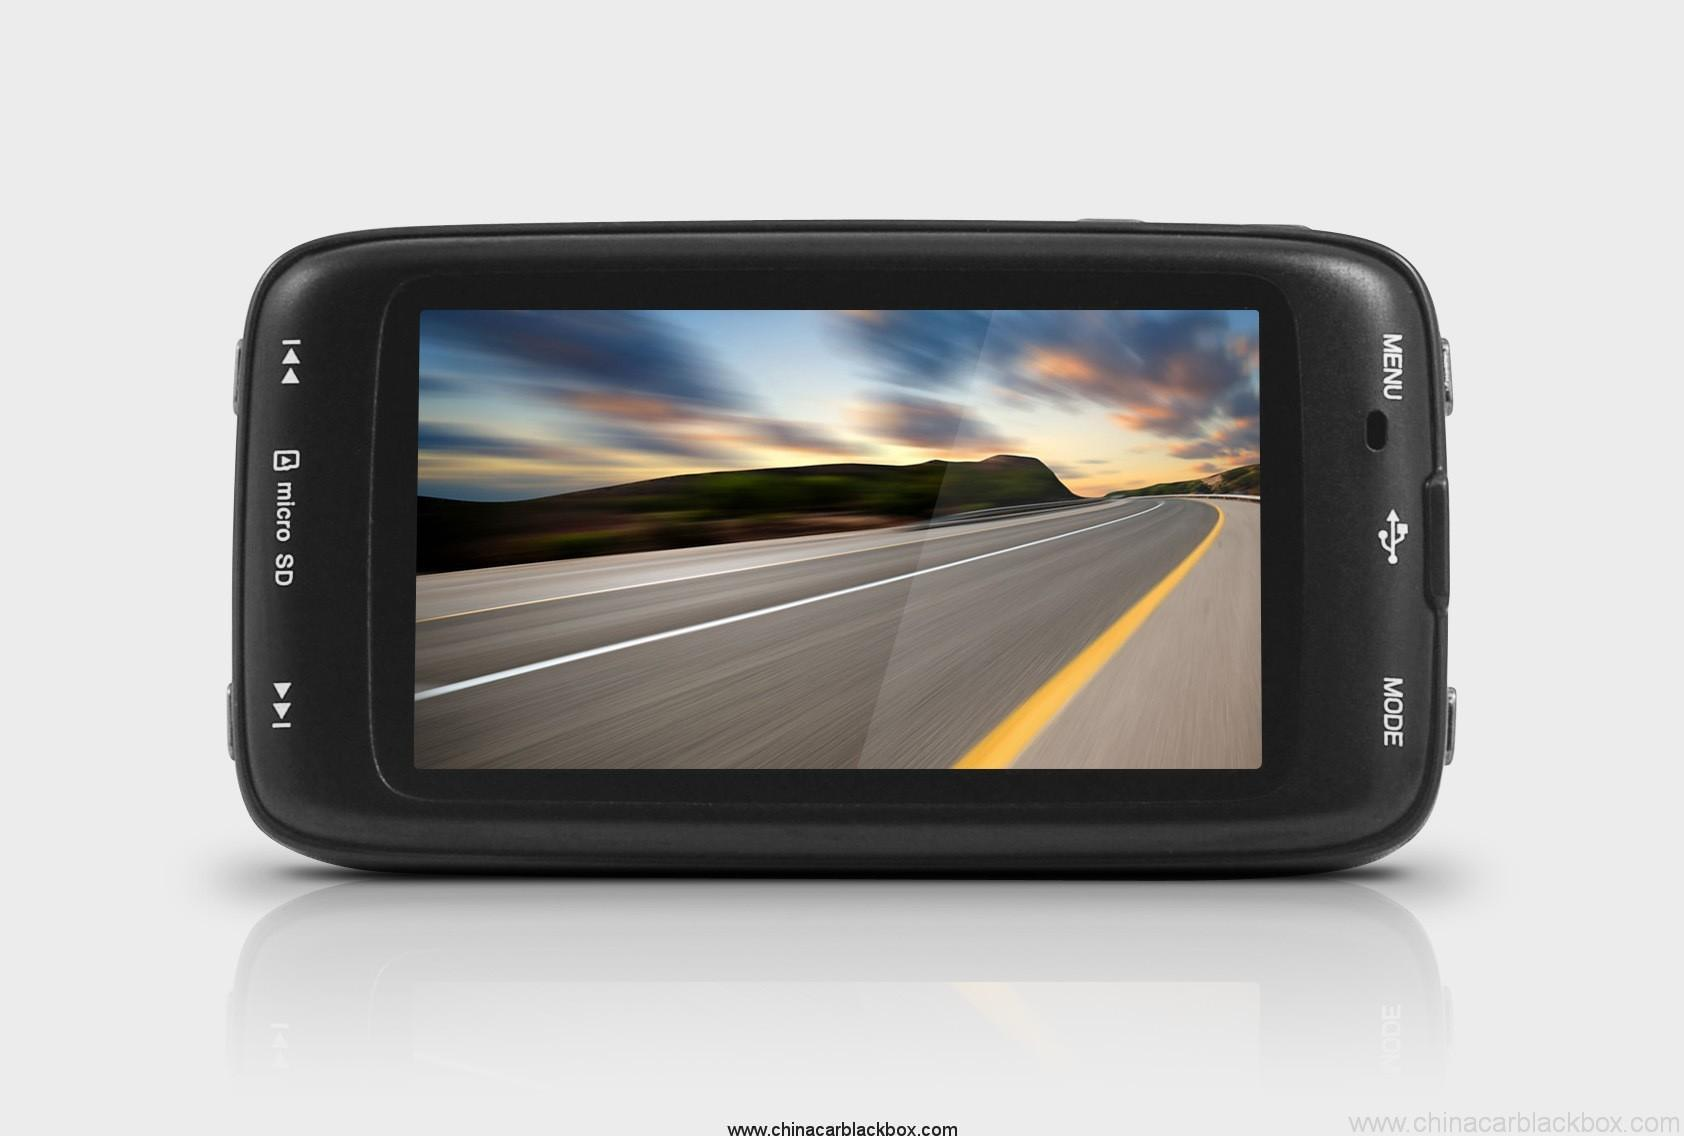 HD 1080P 170 degree Viewing Angle Car DVR with Built-in G-sensor 5